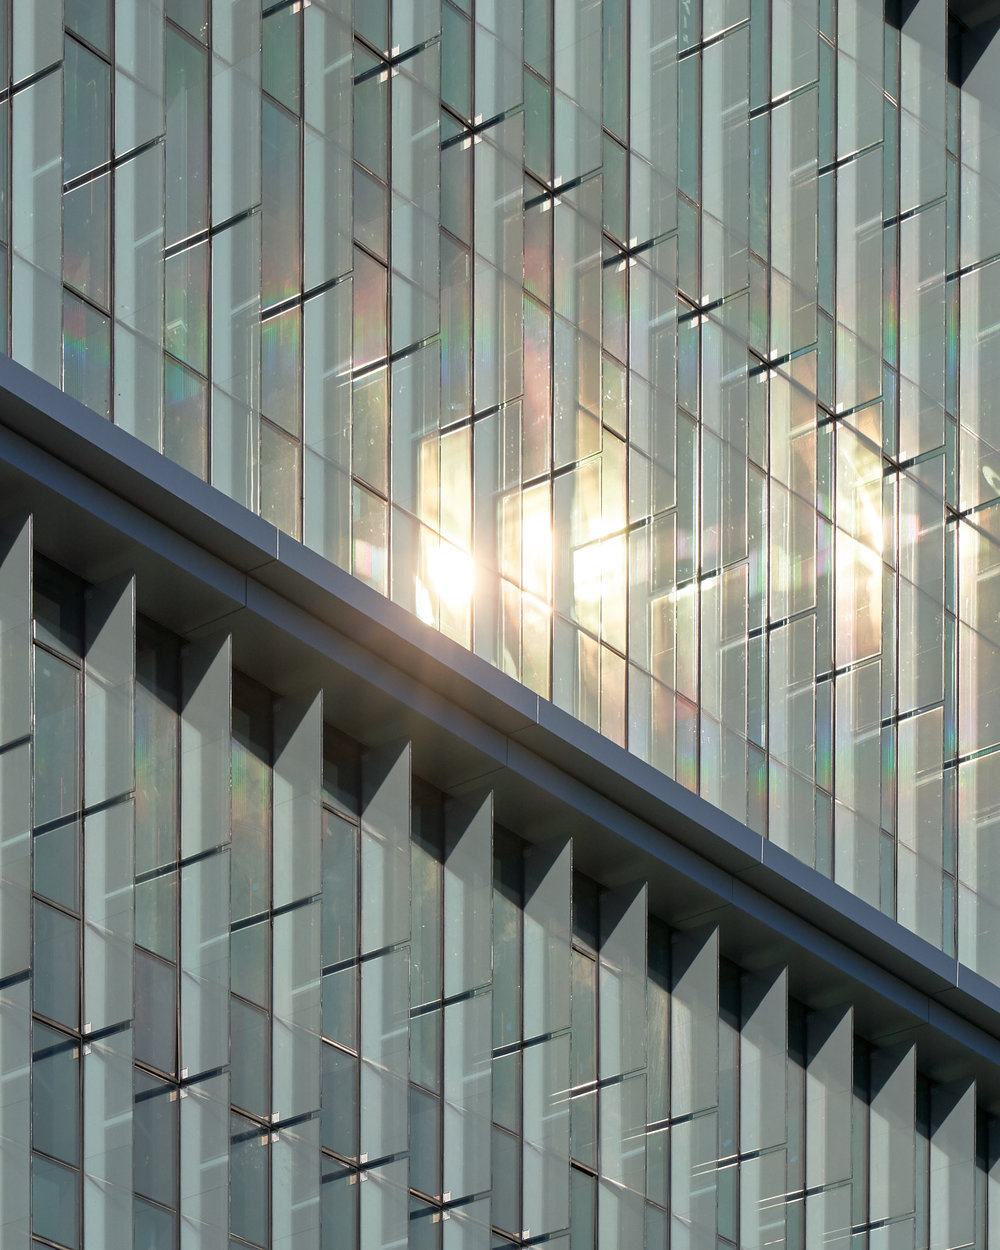 Northwest orientation of glass solar fins: shading reduces solar heat gain from low afternoon sun in summer